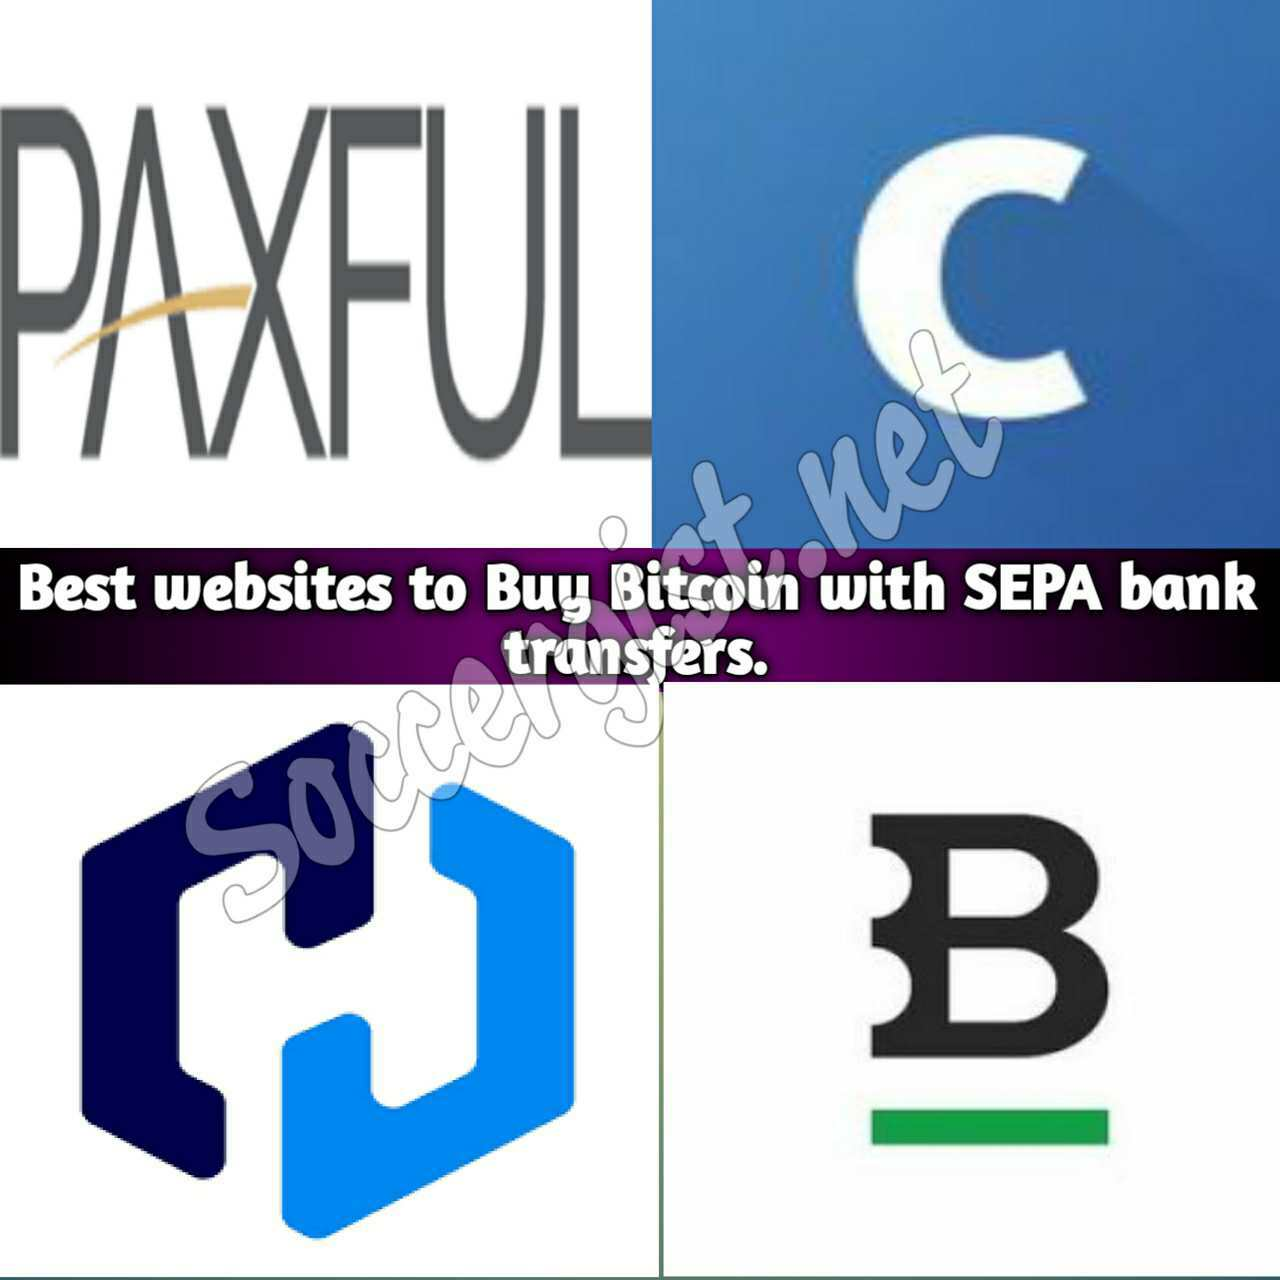 website-buy-bitcoin-with-sepa-bank-transfer